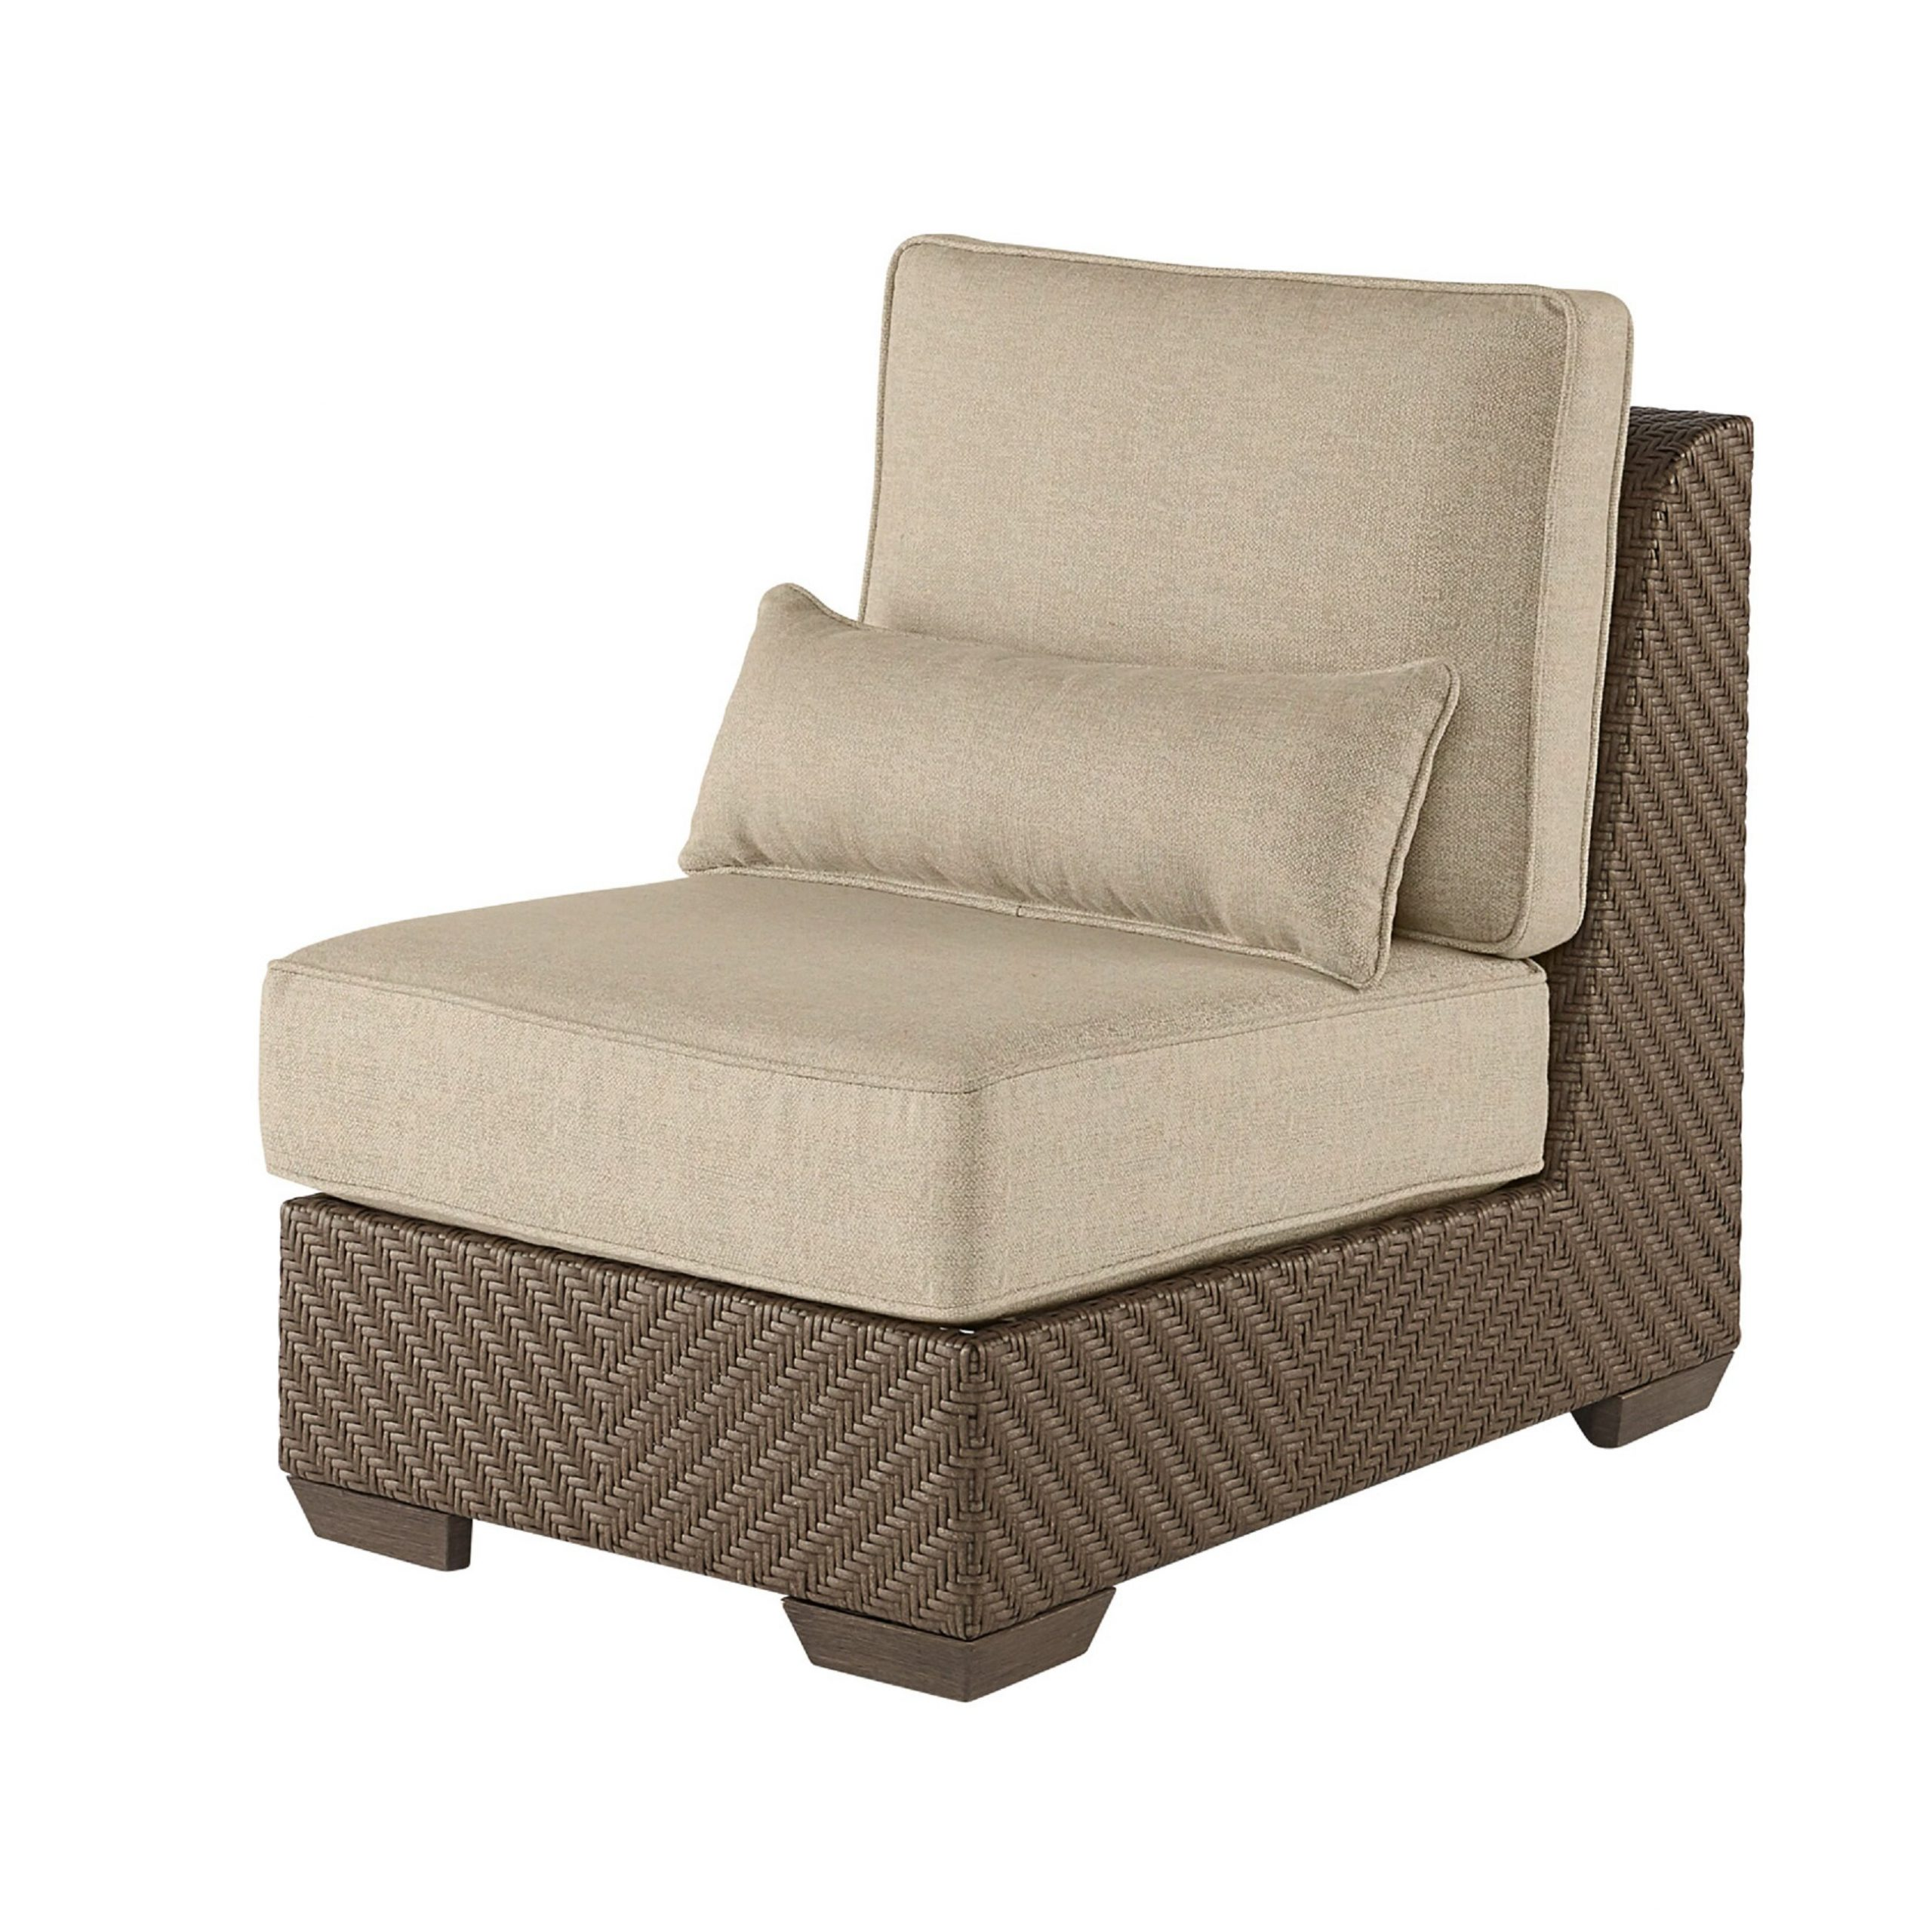 Repp Patio Sofas With Cushion Regarding Favorite Astrid Wicker Patio Chair With Cushion (View 22 of 25)